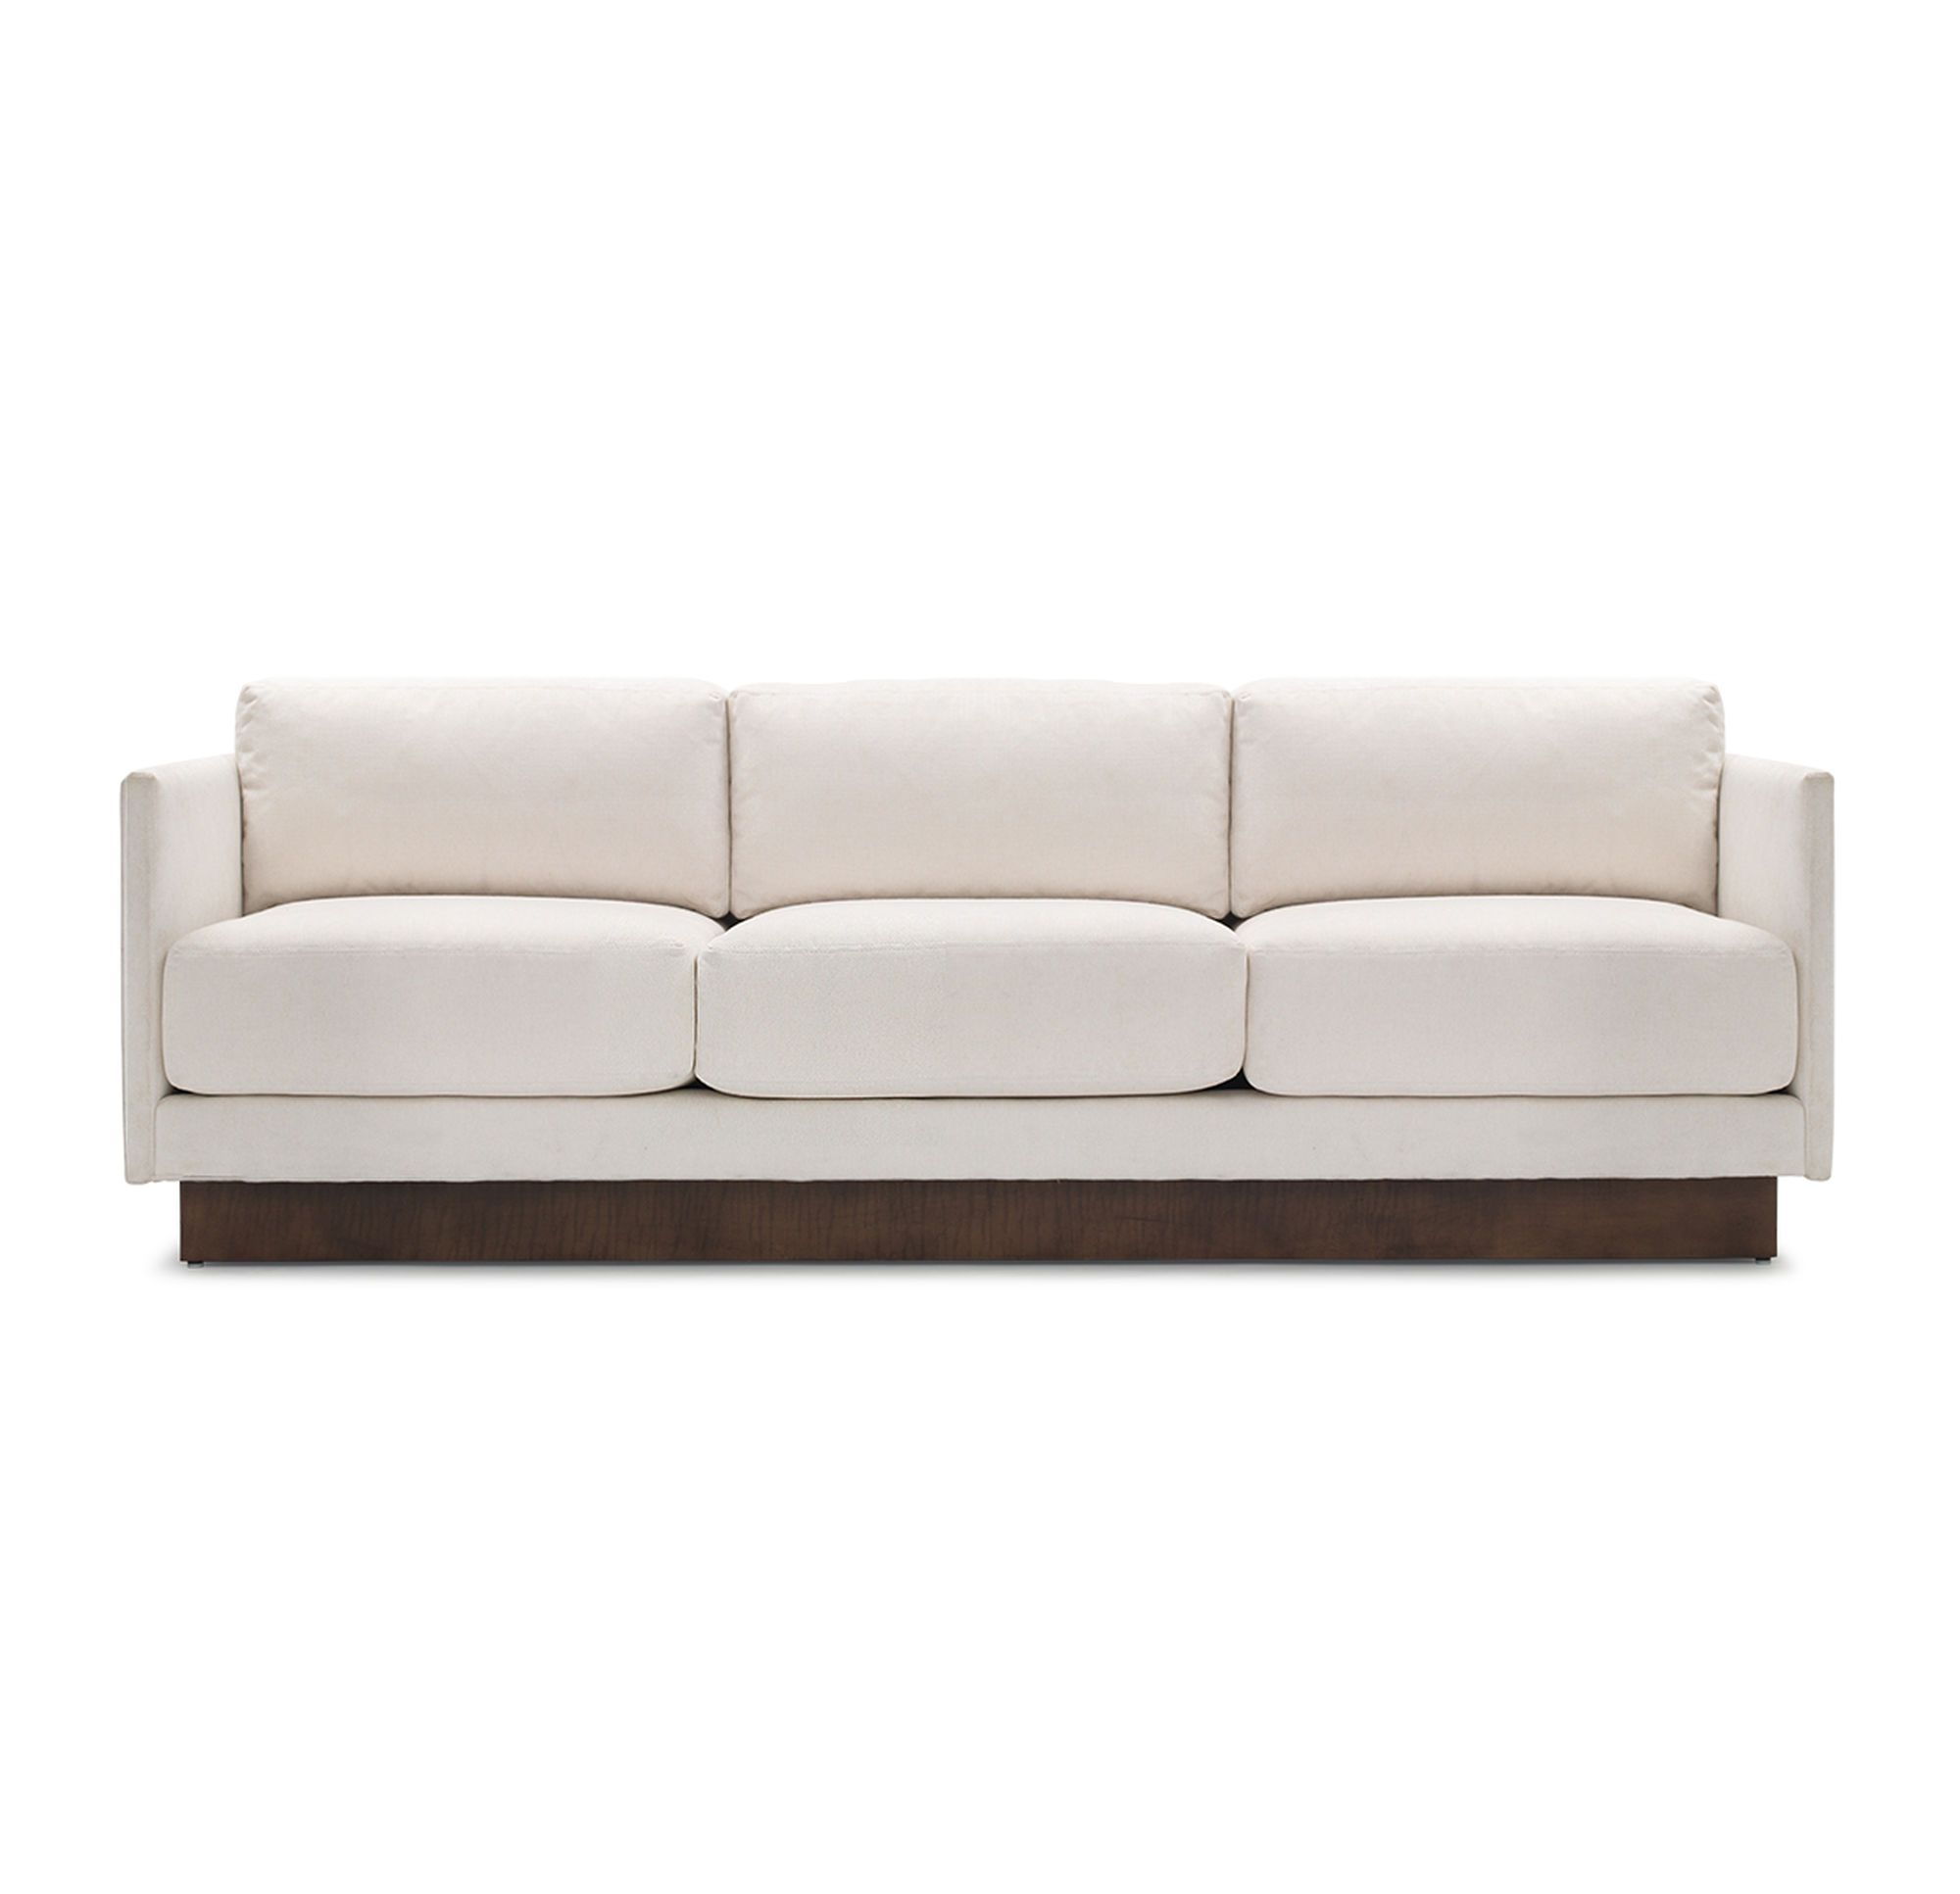 REDFORD SOFA CASON WHITE hi res vc office